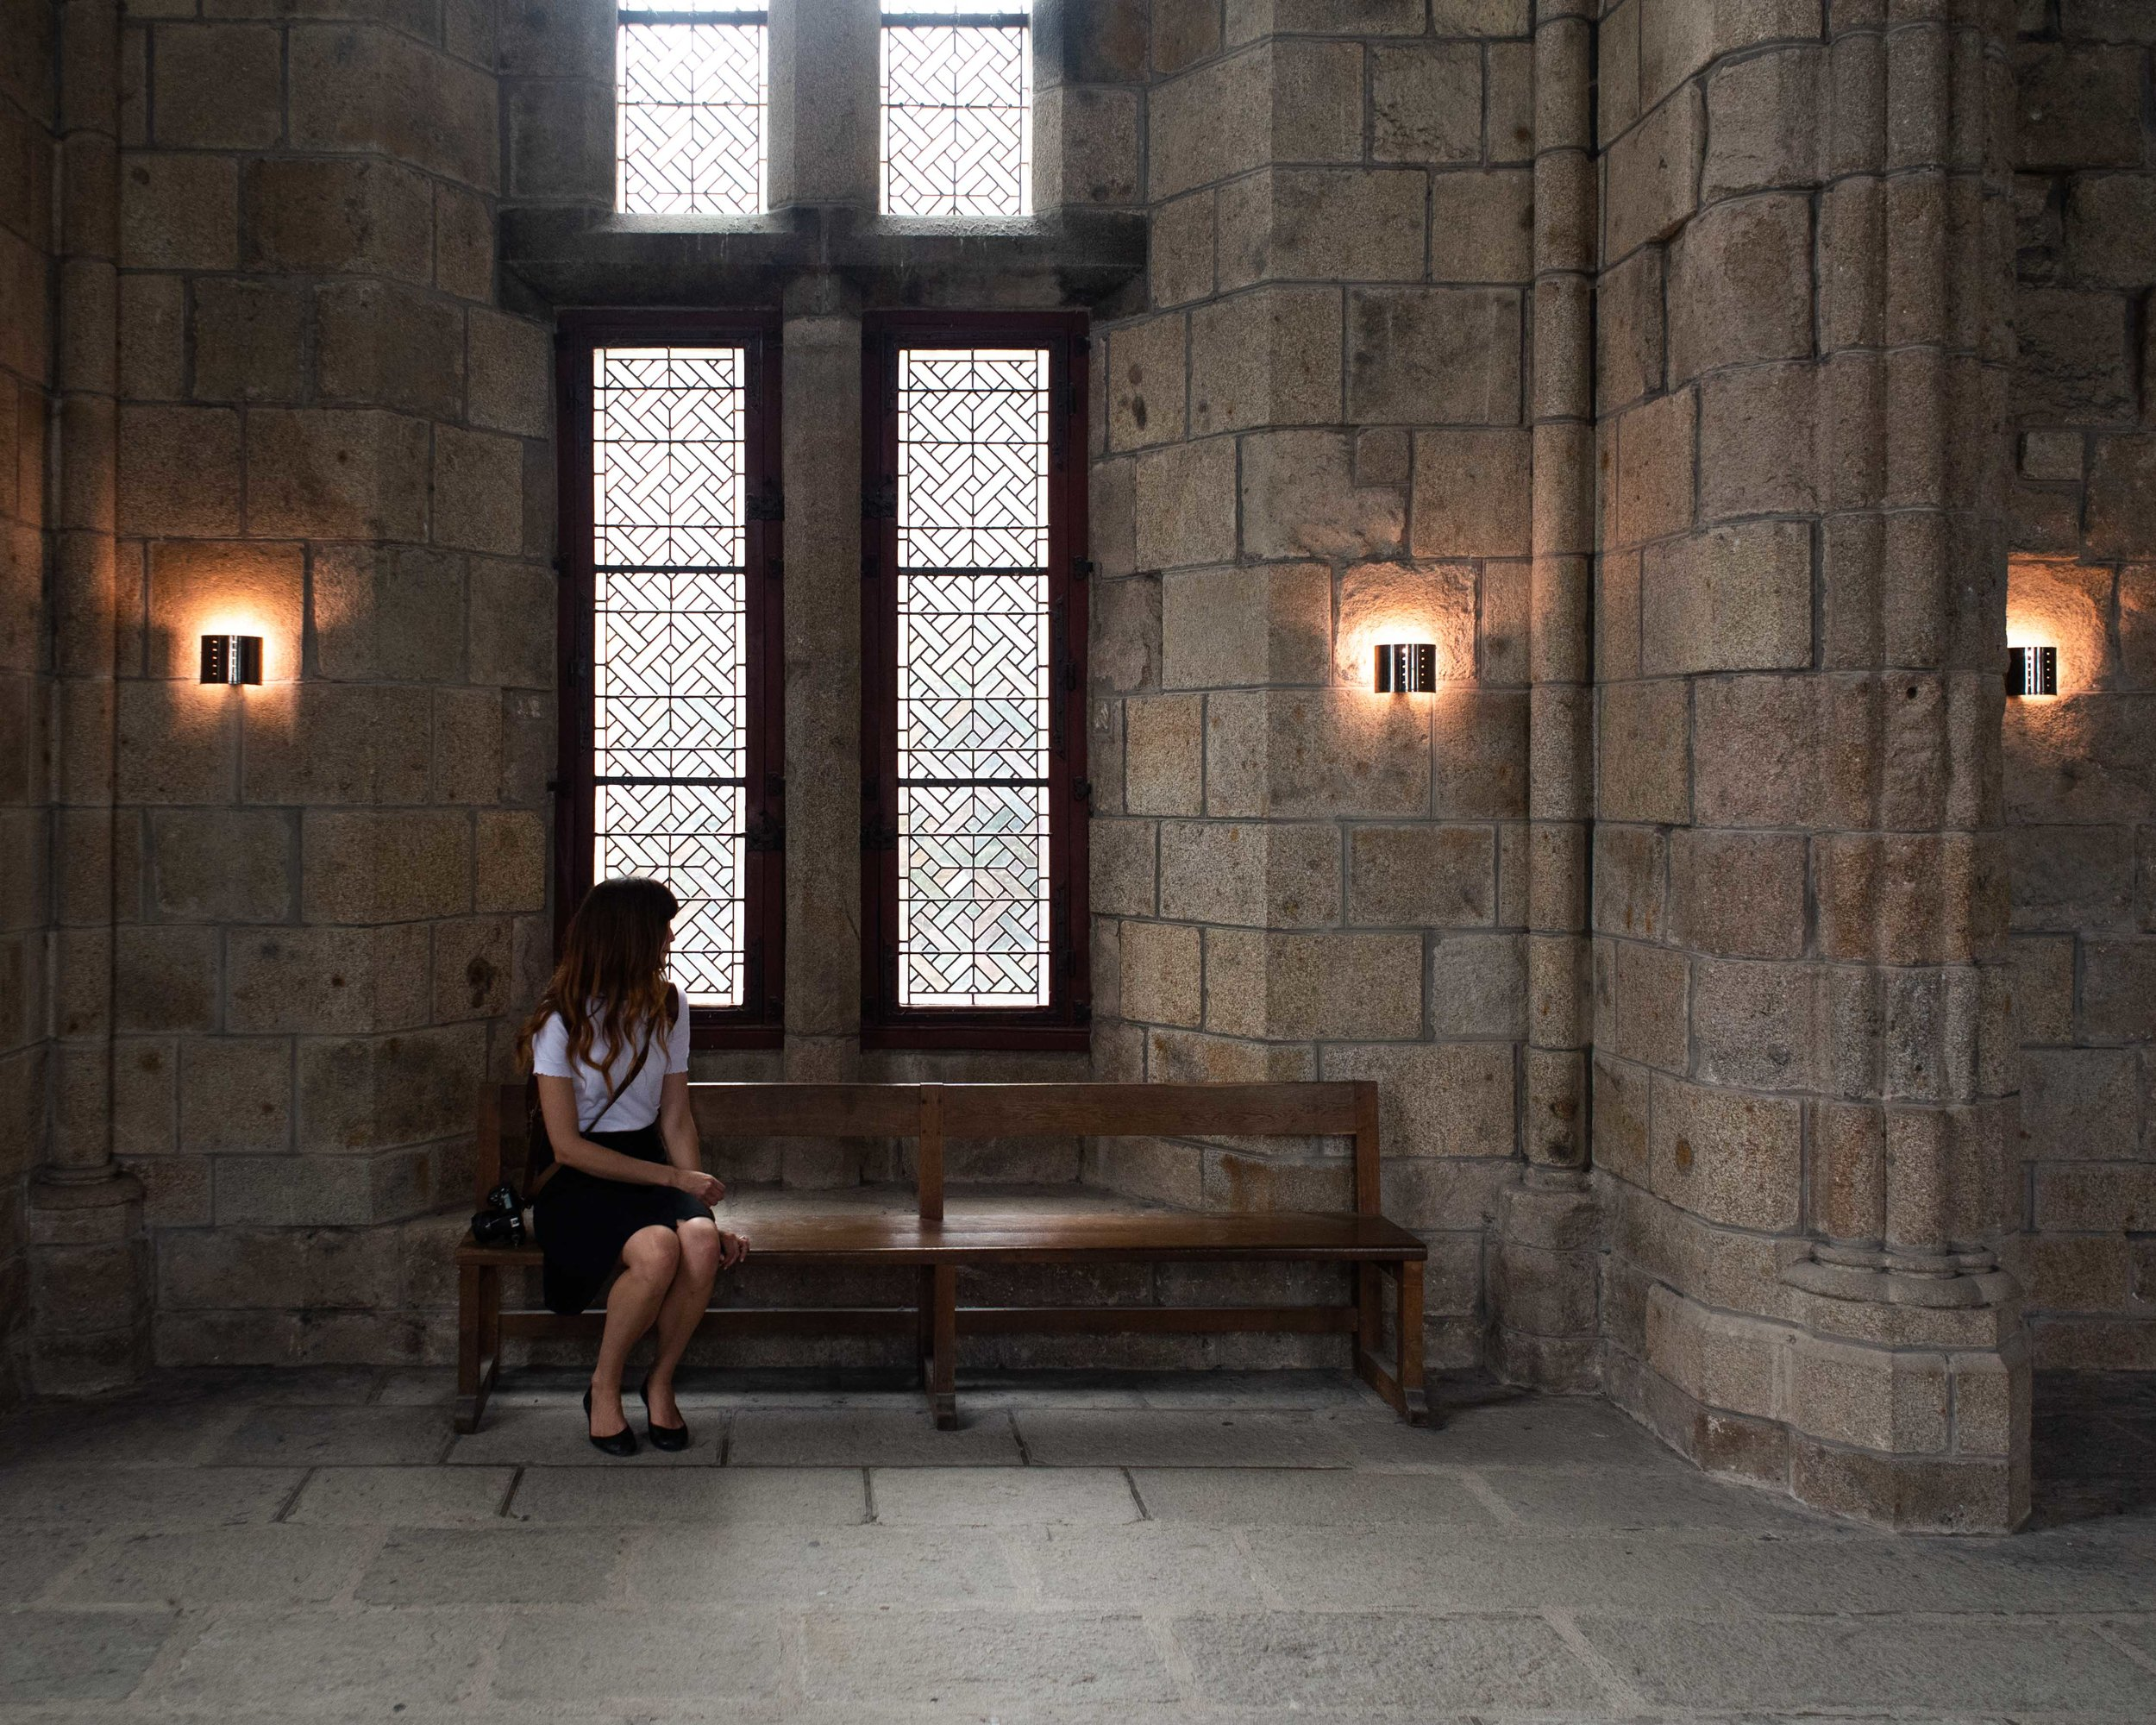 Charise sitting in the abbey.